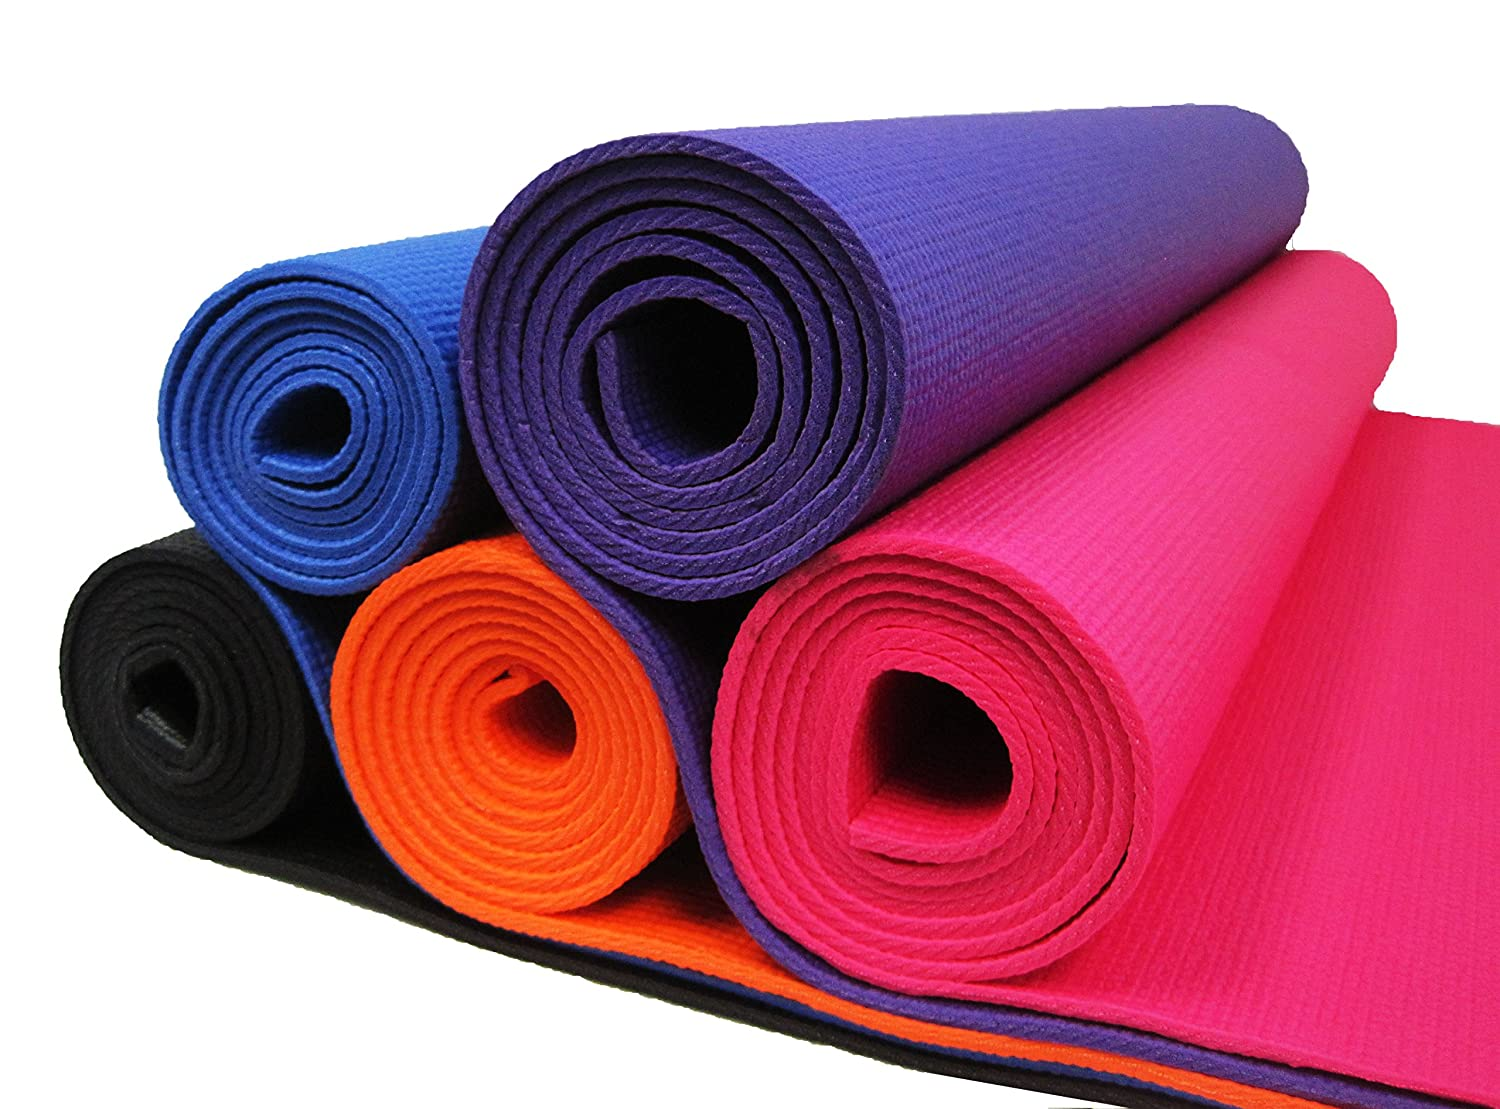 Durable Lightweight Microban Antimicrobial 4 MM Thick Yoga Mat by Spectrum Products